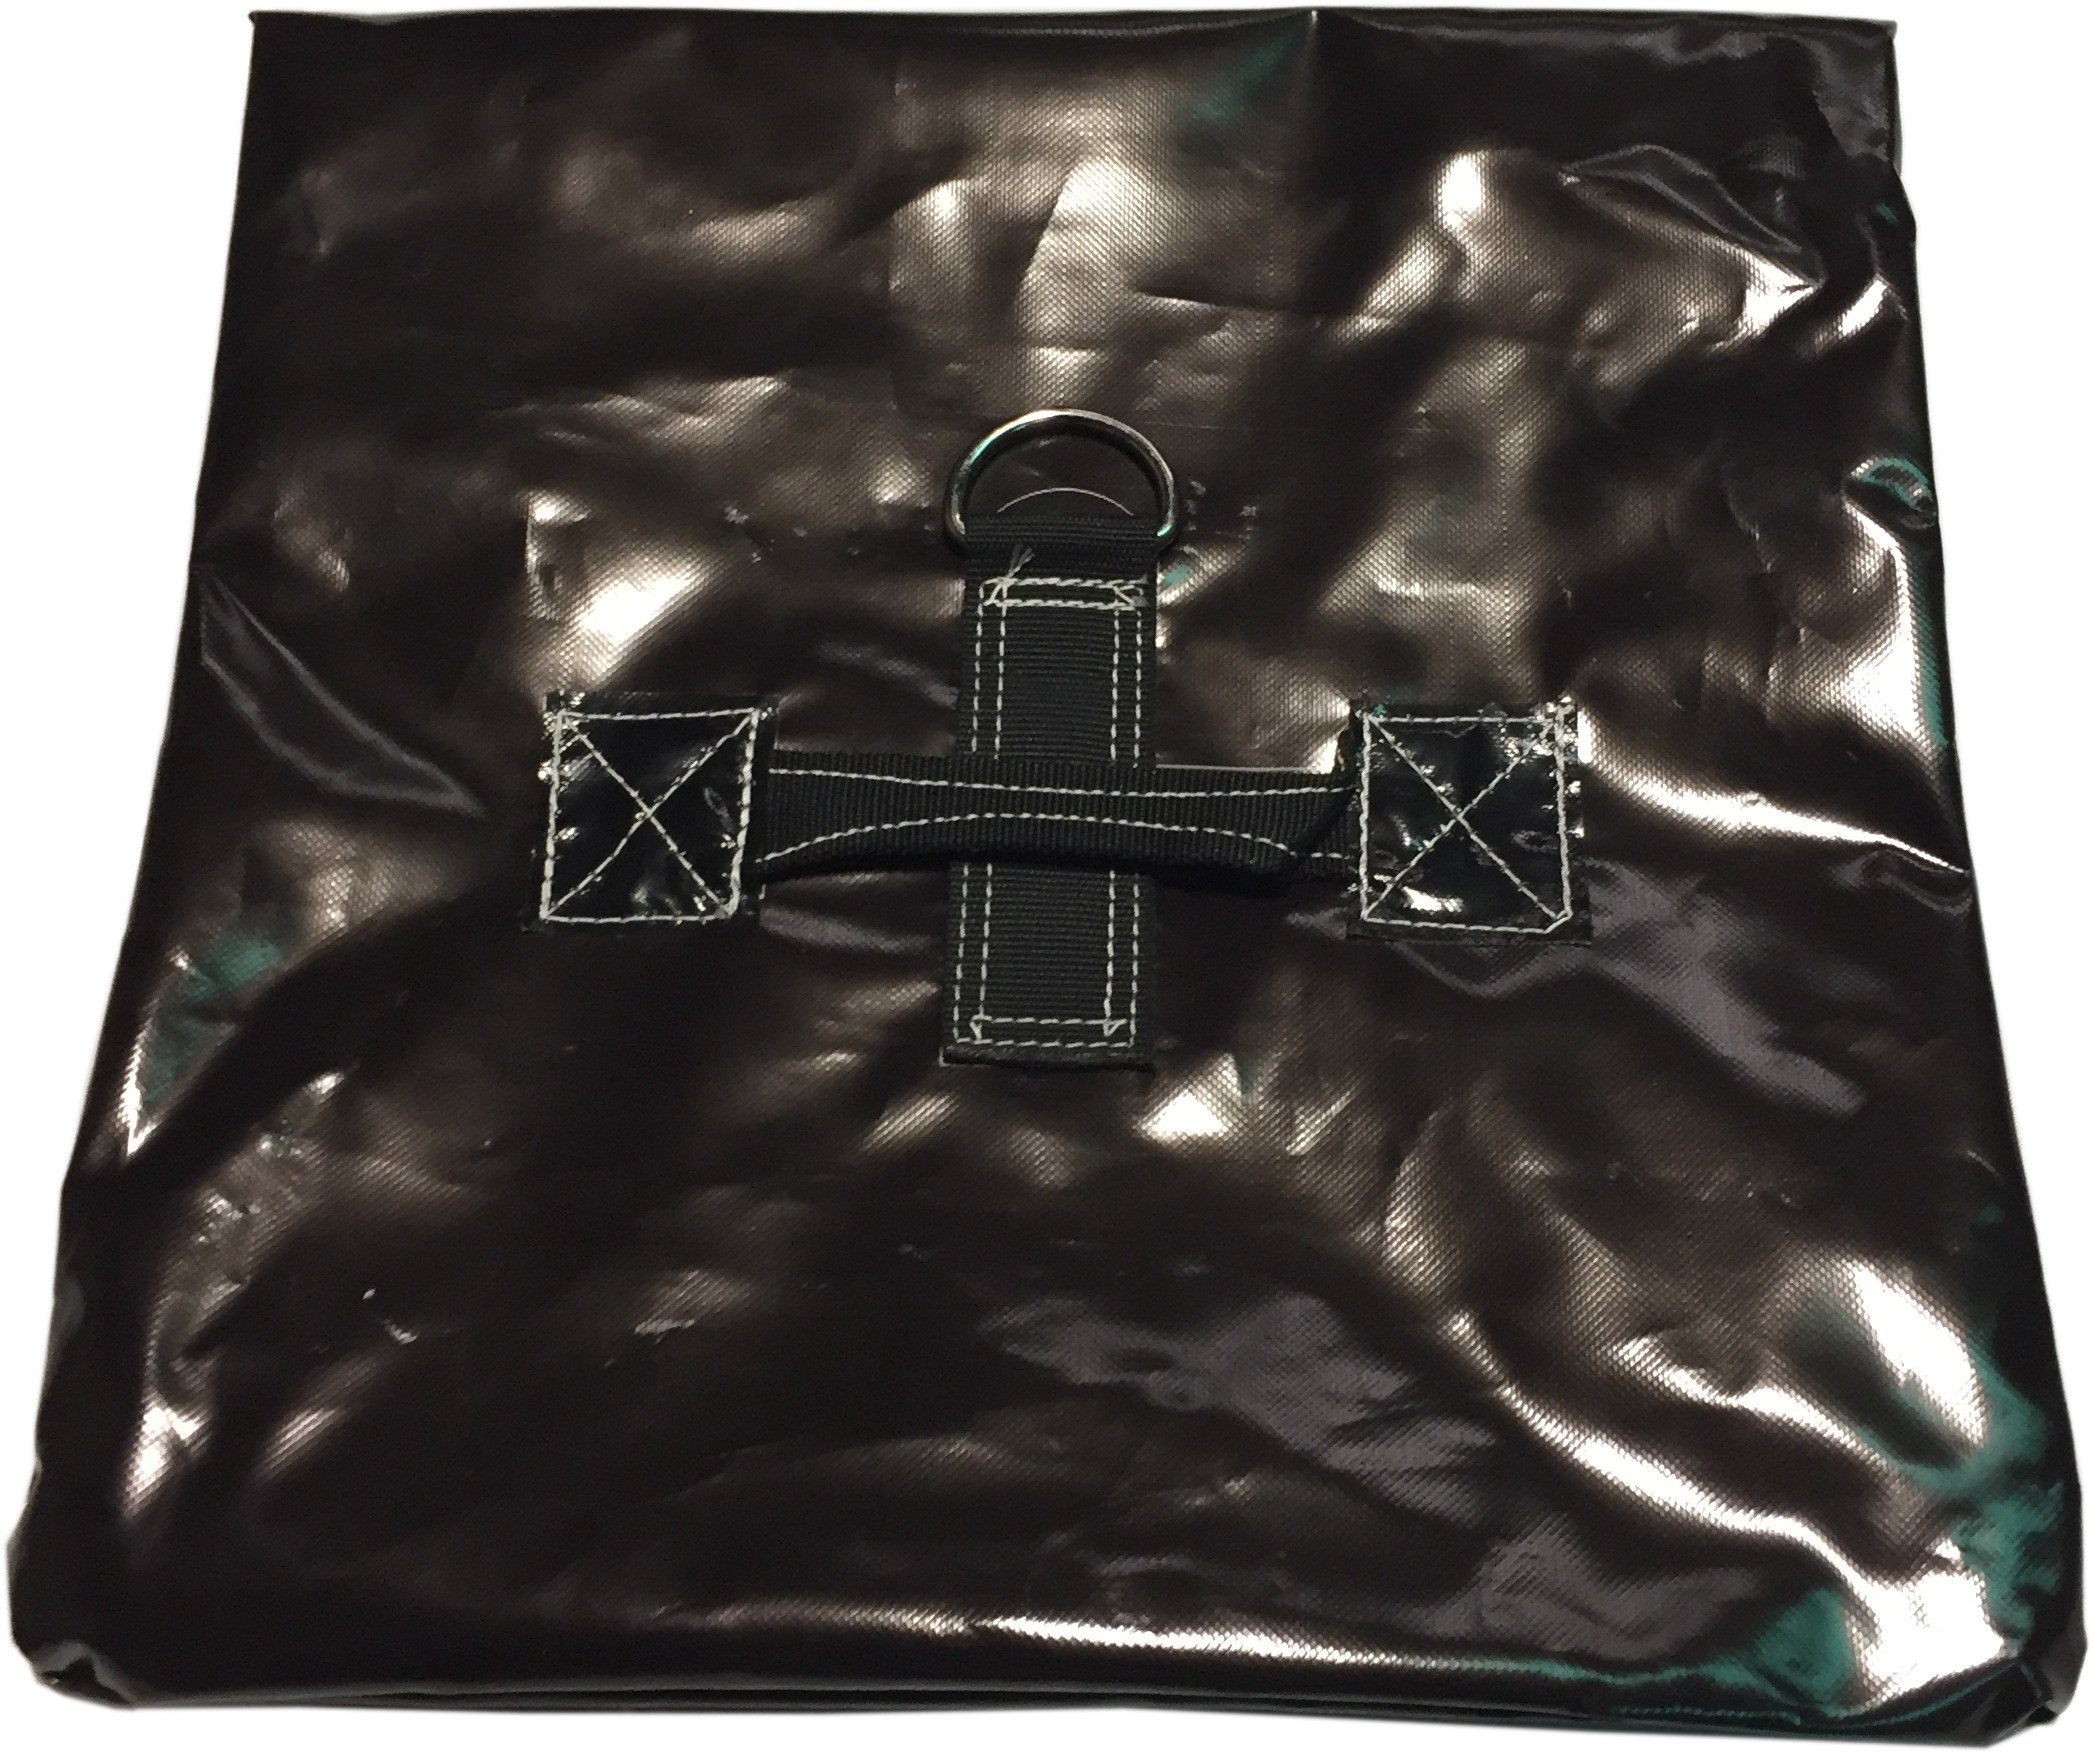 Vinyl Sand Bag, 6 Pack, Support/Anchor for Inflatables, Bounce Houses and Tents by Gorilla Bounce (Image #2)